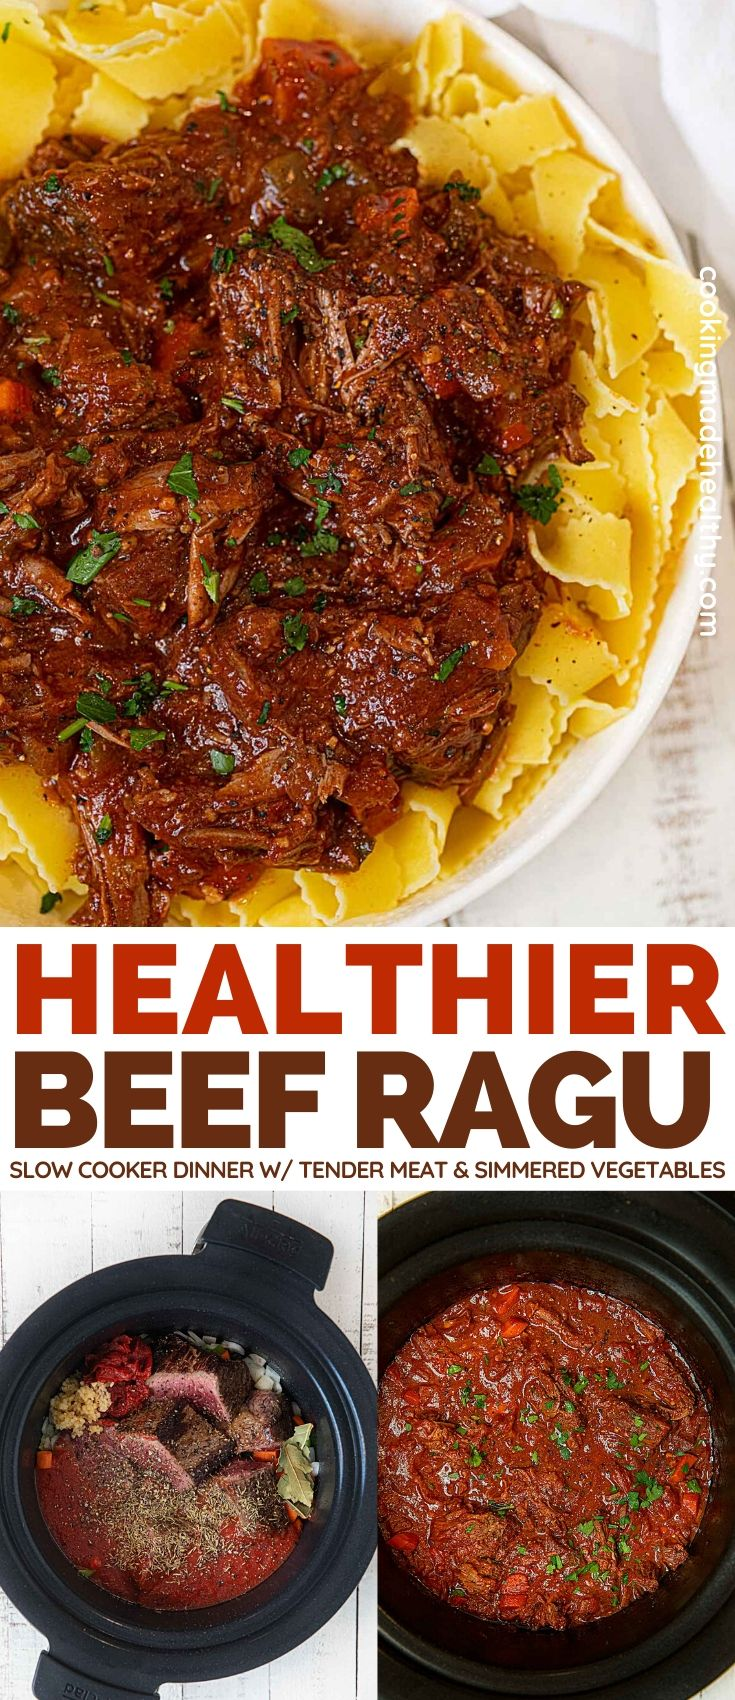 Healthy Beef Ragu served with pasta.